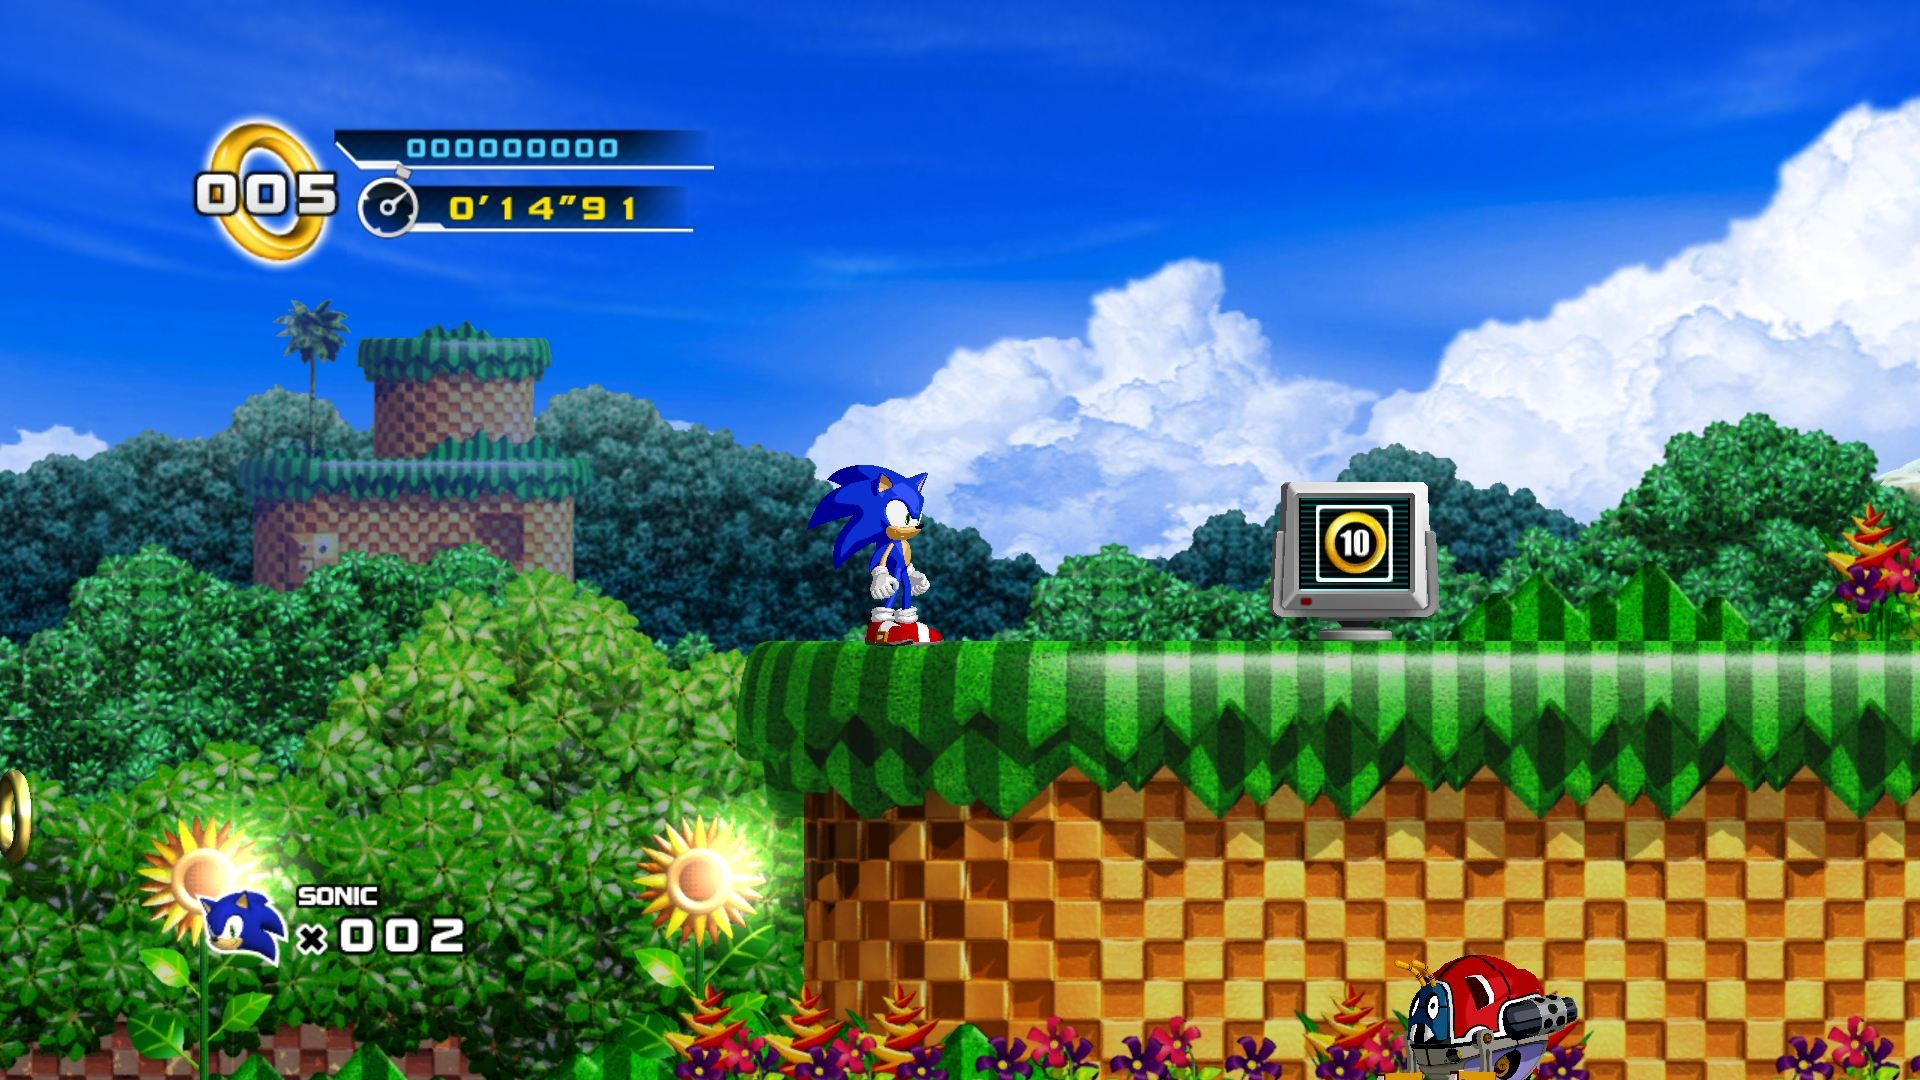 Video Game Sonic The Hedgehog 4 Episode I 1920x1080